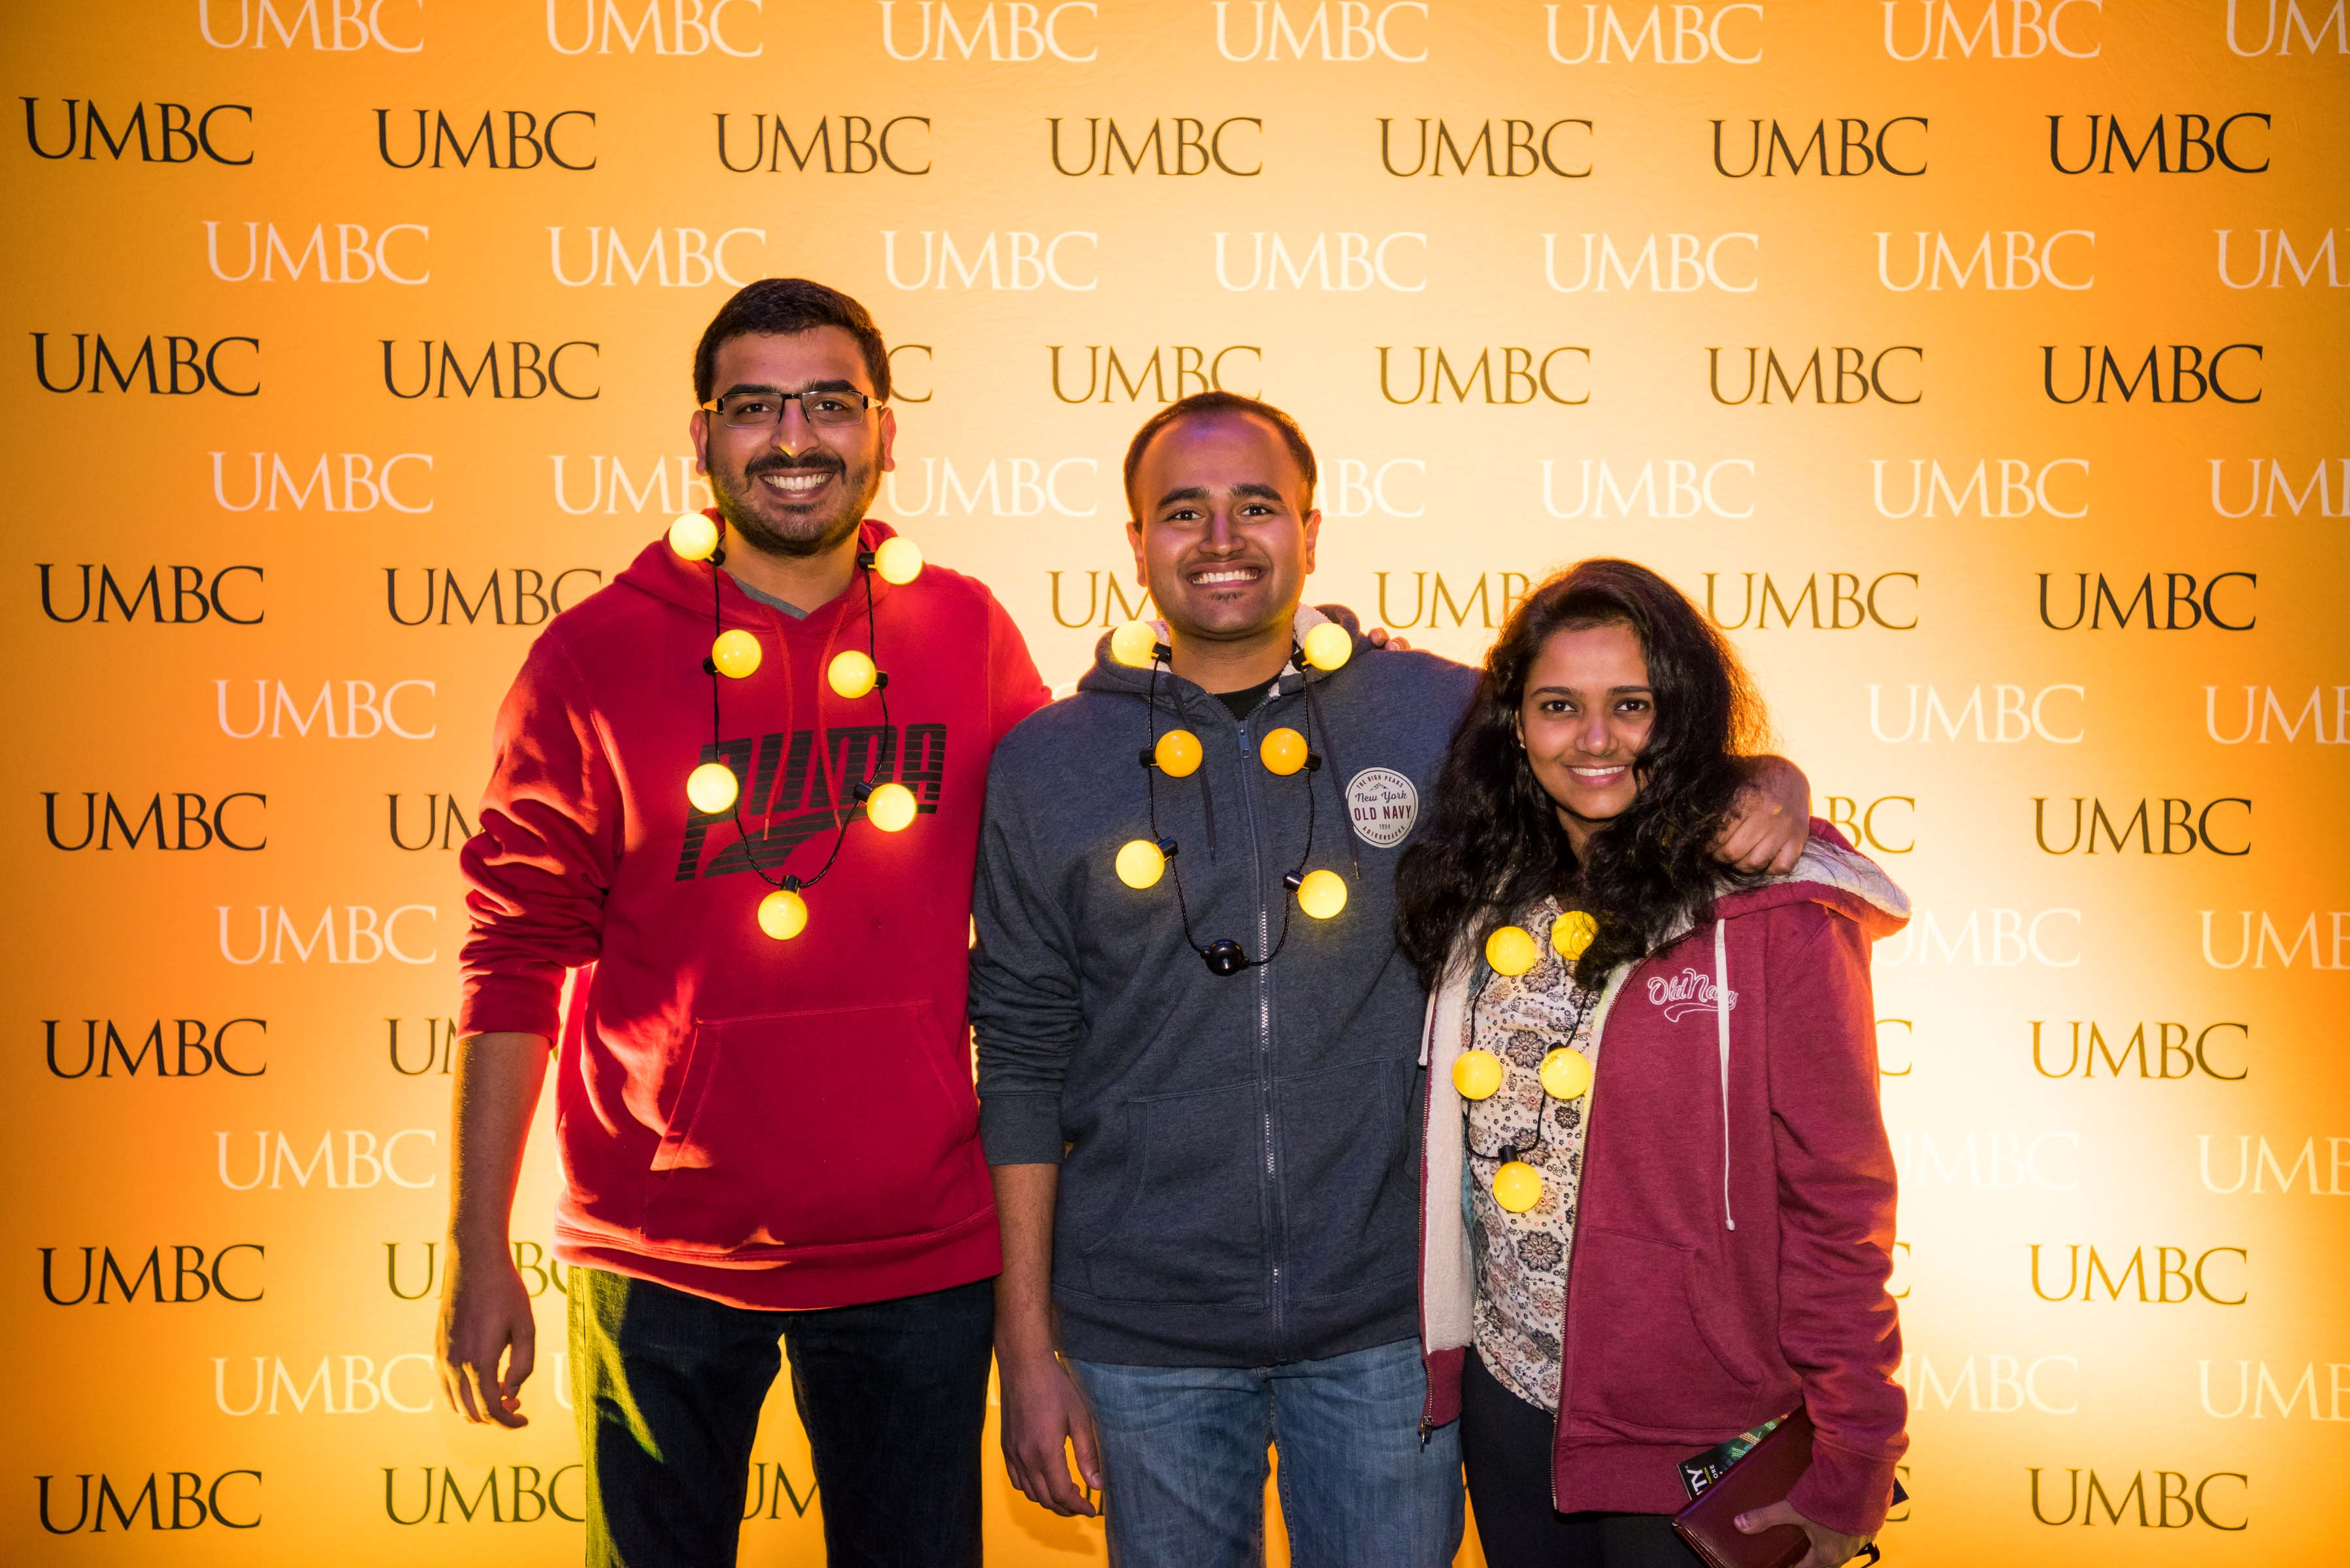 Three people pose in front of UMBC wall at alumni reception